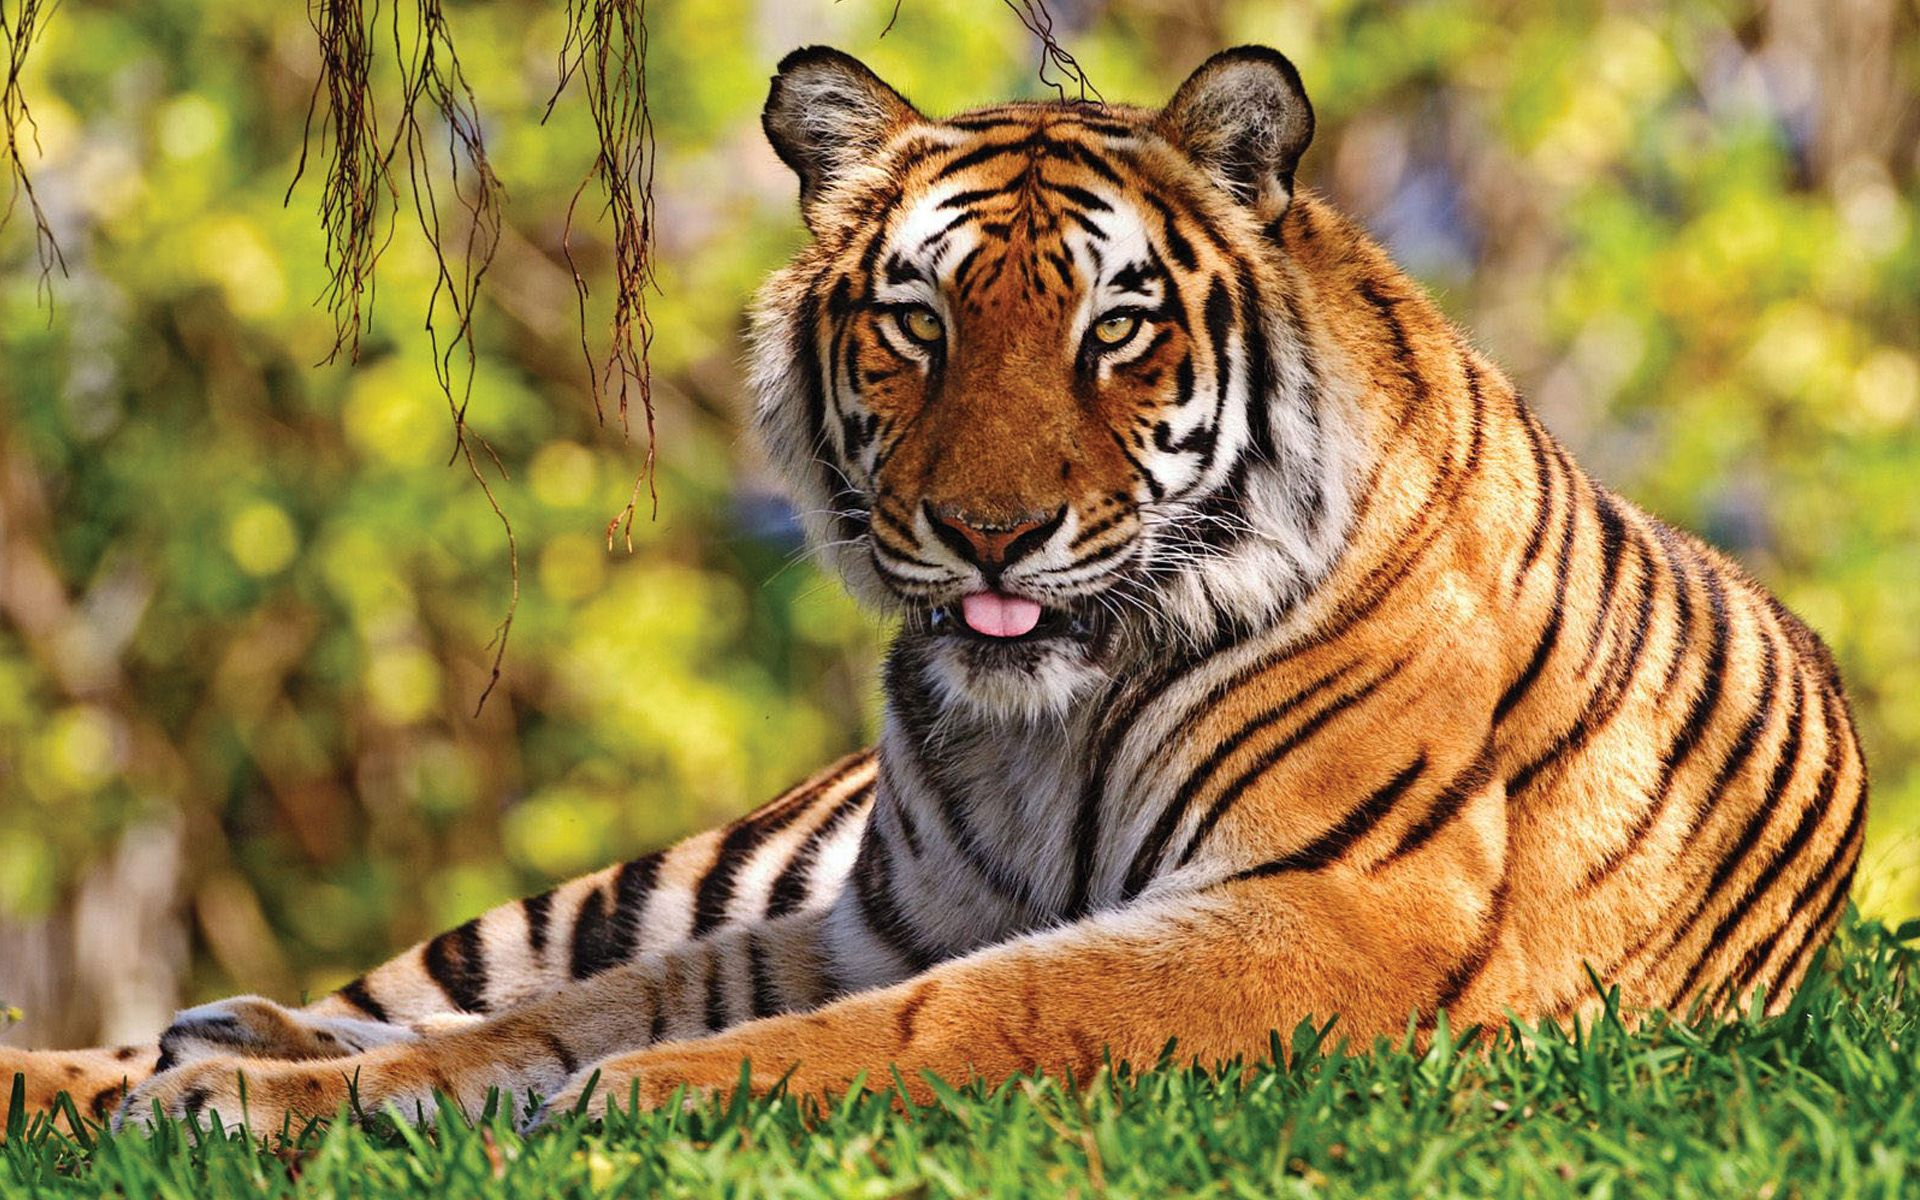 129456 download wallpaper Animals, Tiger, Grass, To Lie Down, Lie, Language, Tongue, Predator, Big Cat screensavers and pictures for free